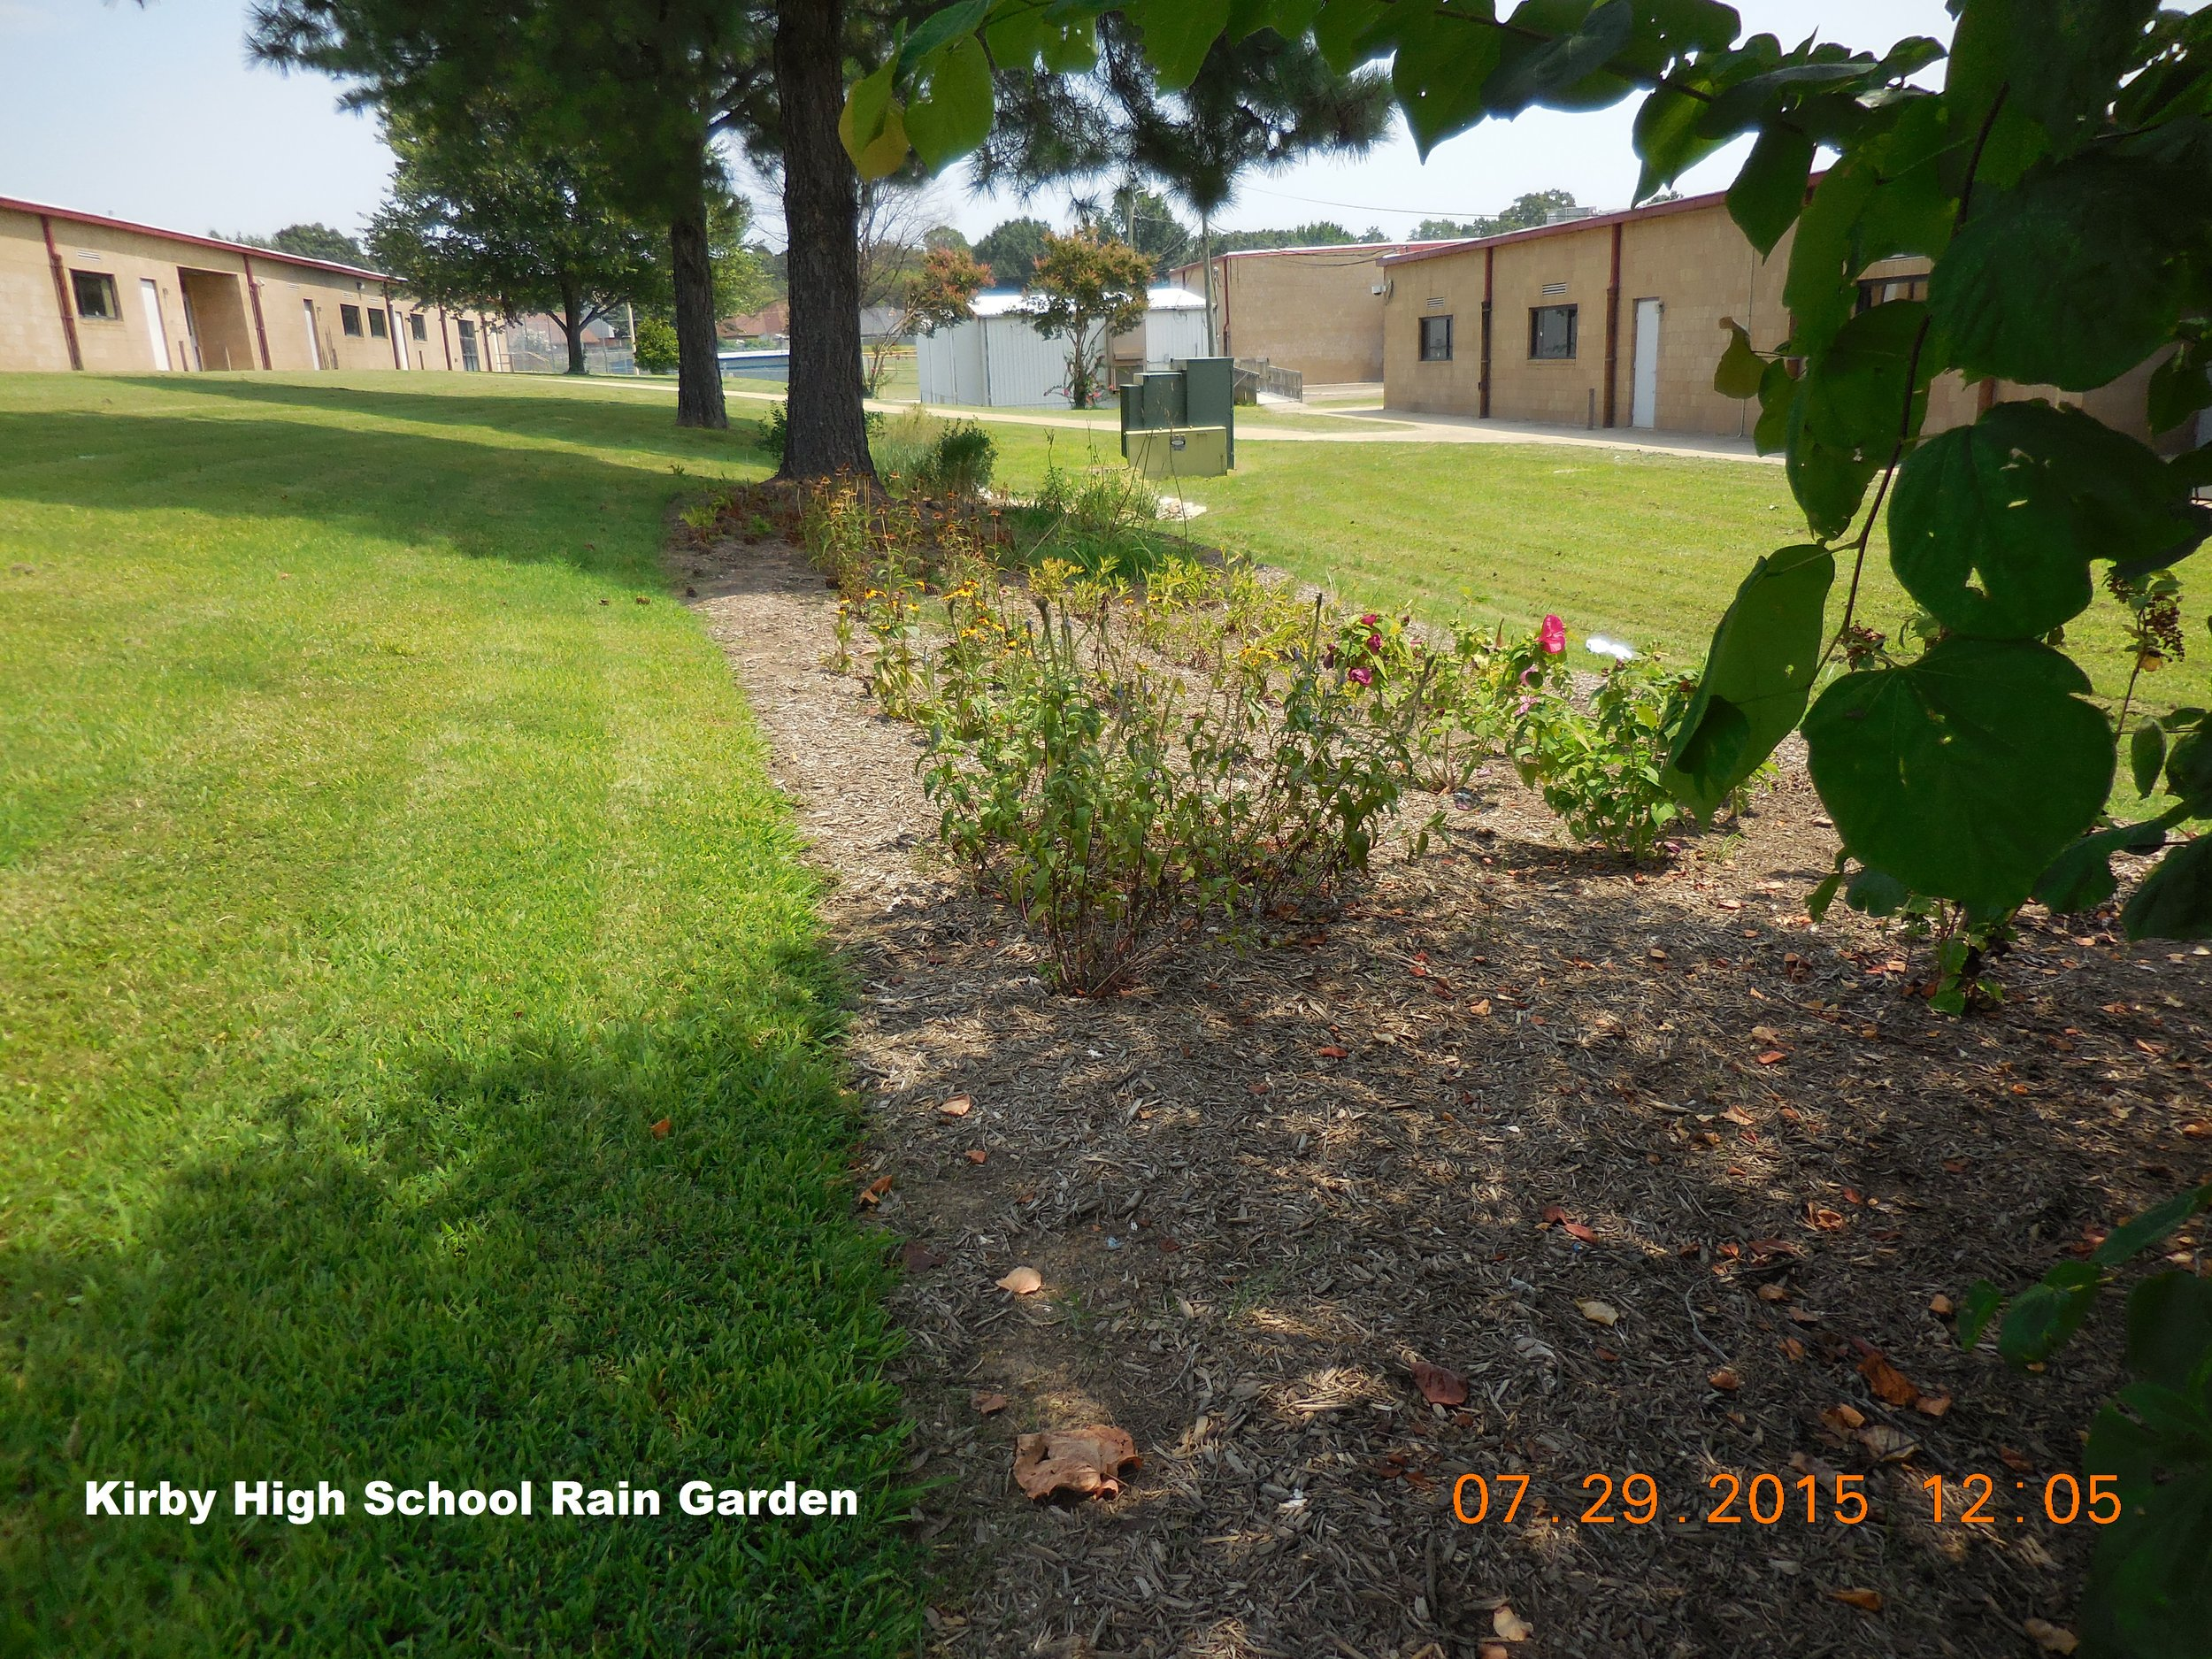 """One of the 3 original rain gardens after initial installation at Kirby High School. Since then, """"Project Rain Garden"""" has evolved with the goal of installing 3 rain garden per year at schools who are interested in maintaining and utilizing the gardens to educate children and the community."""